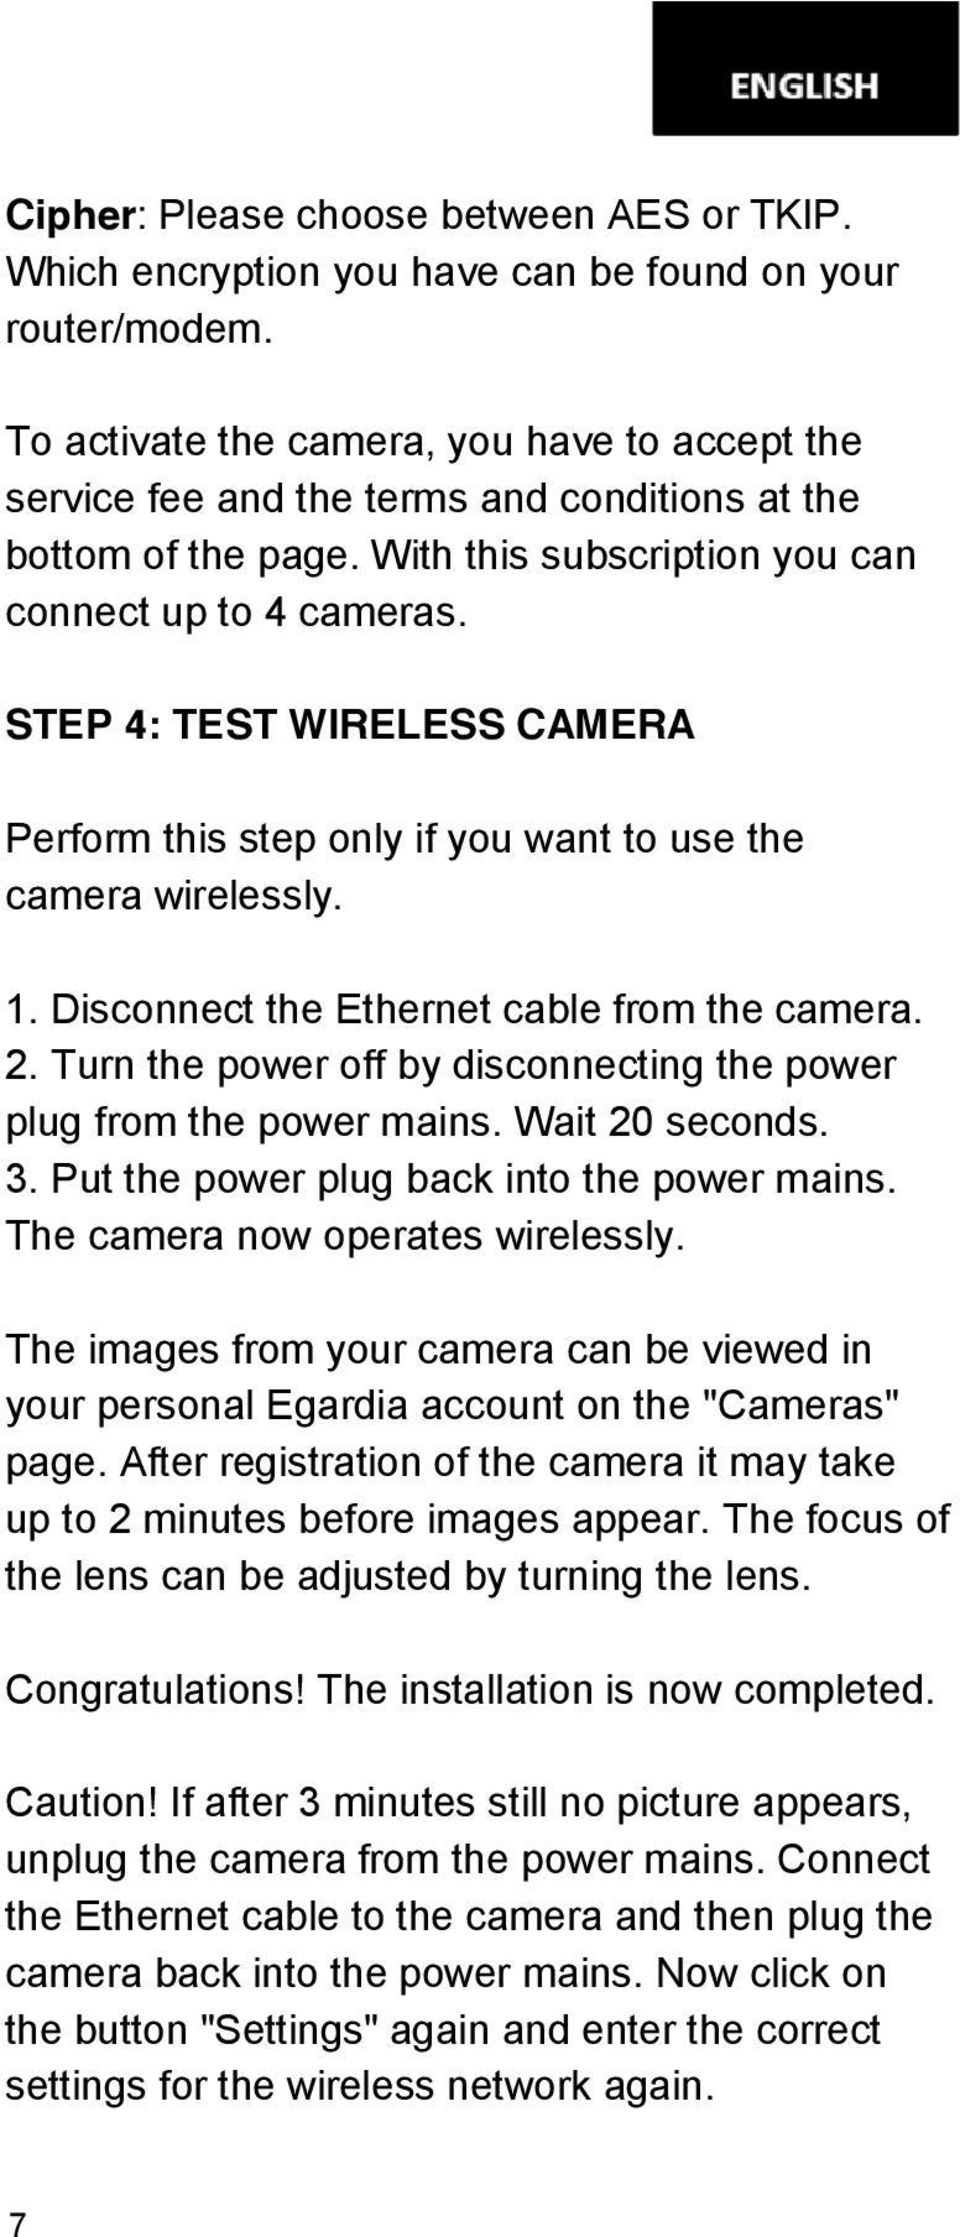 STEP 4: TEST WIRELESS CAMERA Perform this step only if you want to use the camera wirelessly. 1. Disconnect the Ethernet cable from the camera. 2.